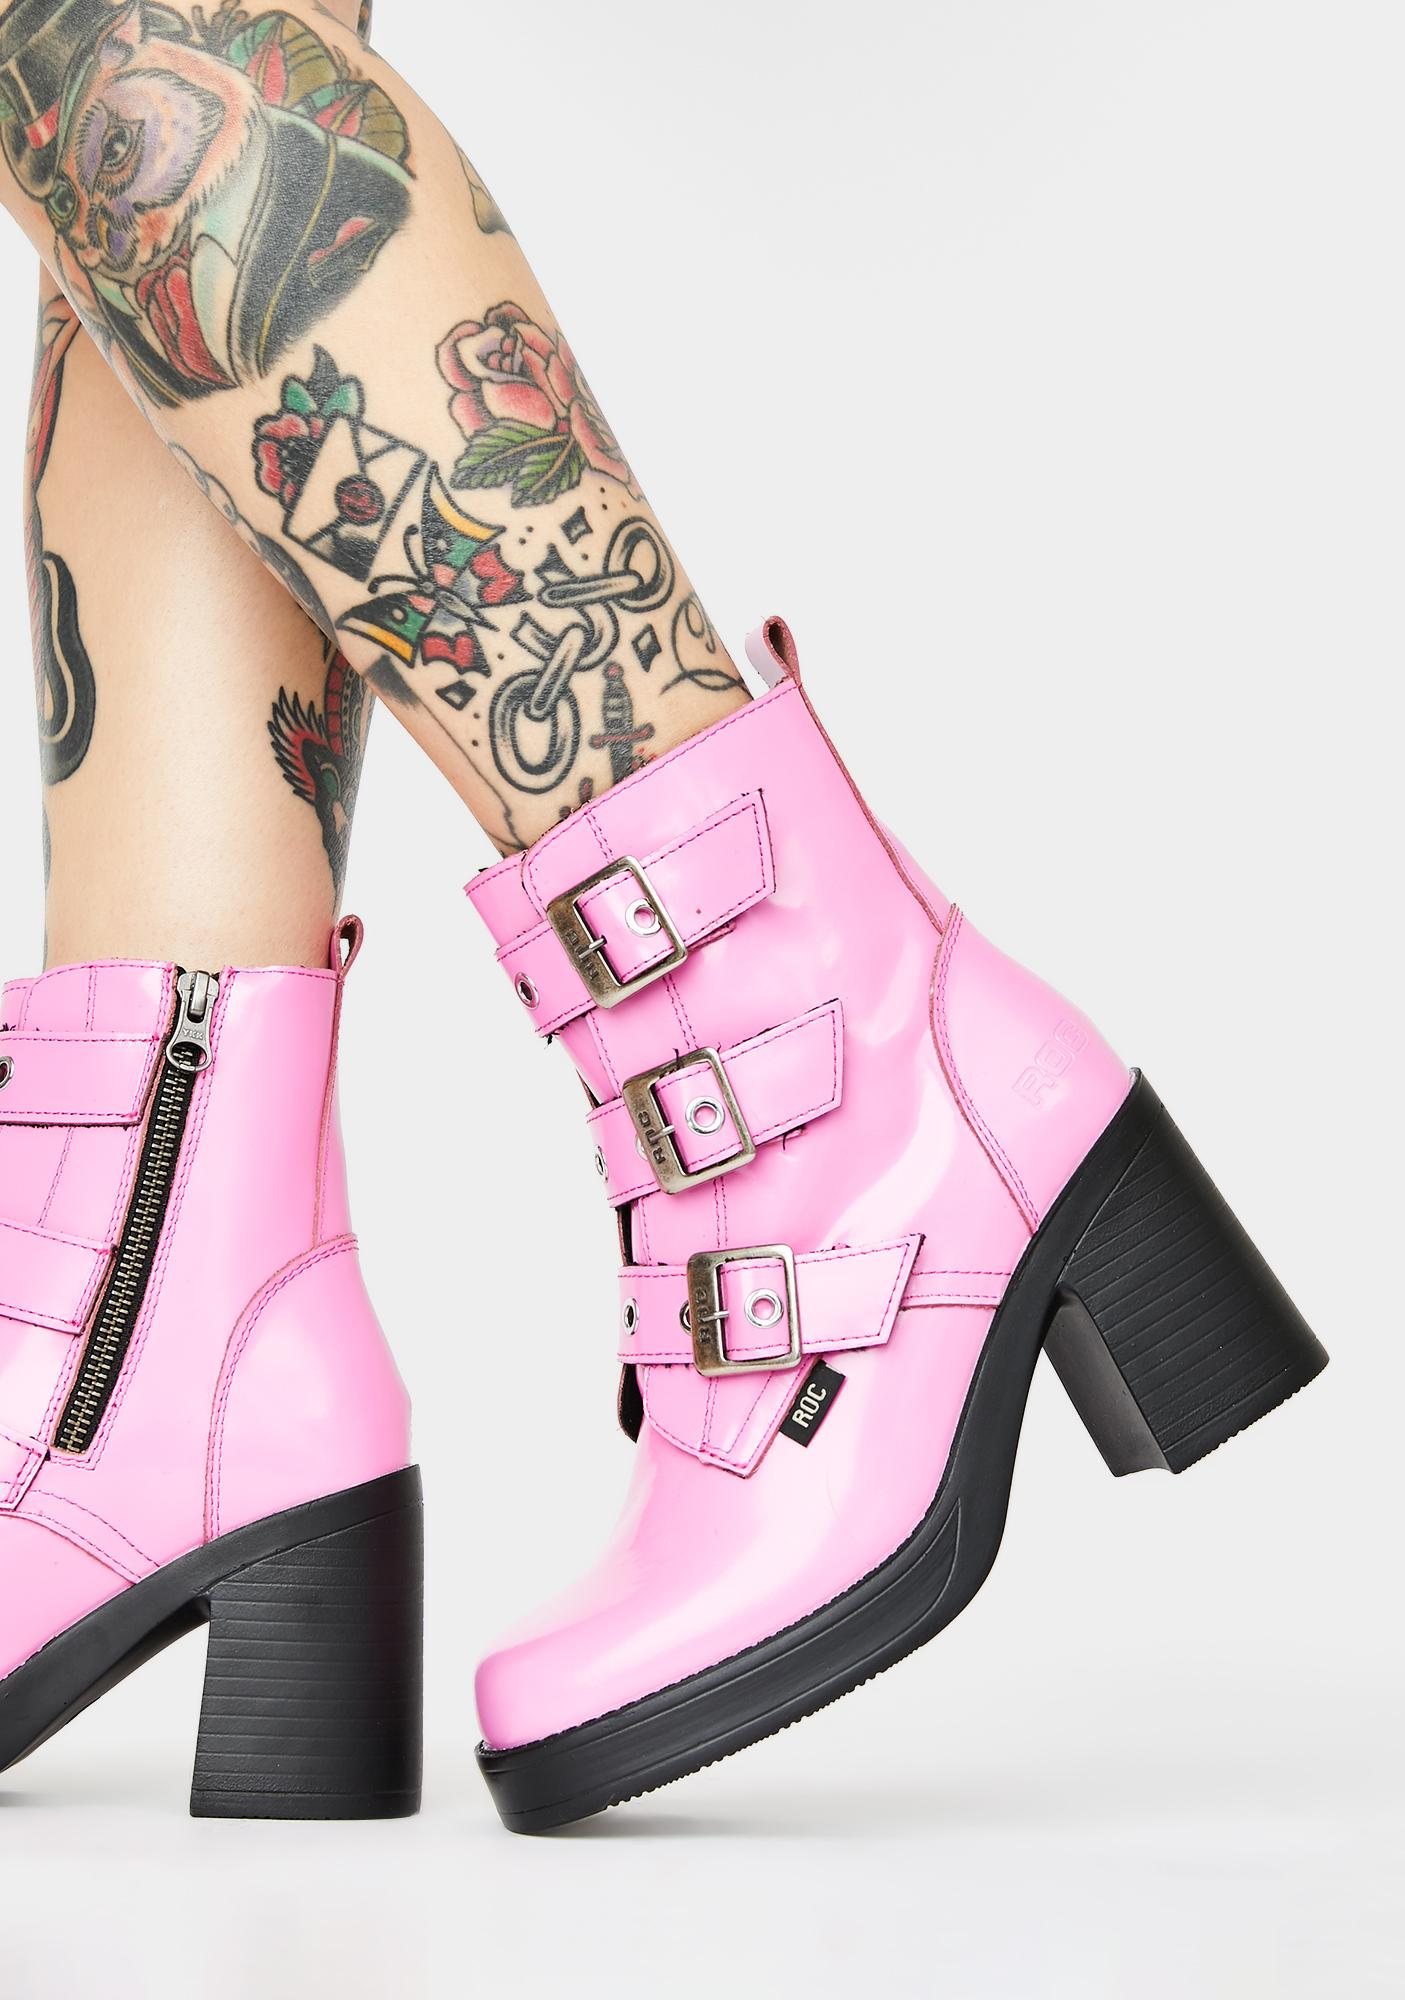 Indigo Ankle Boots by Roc Boots Australia